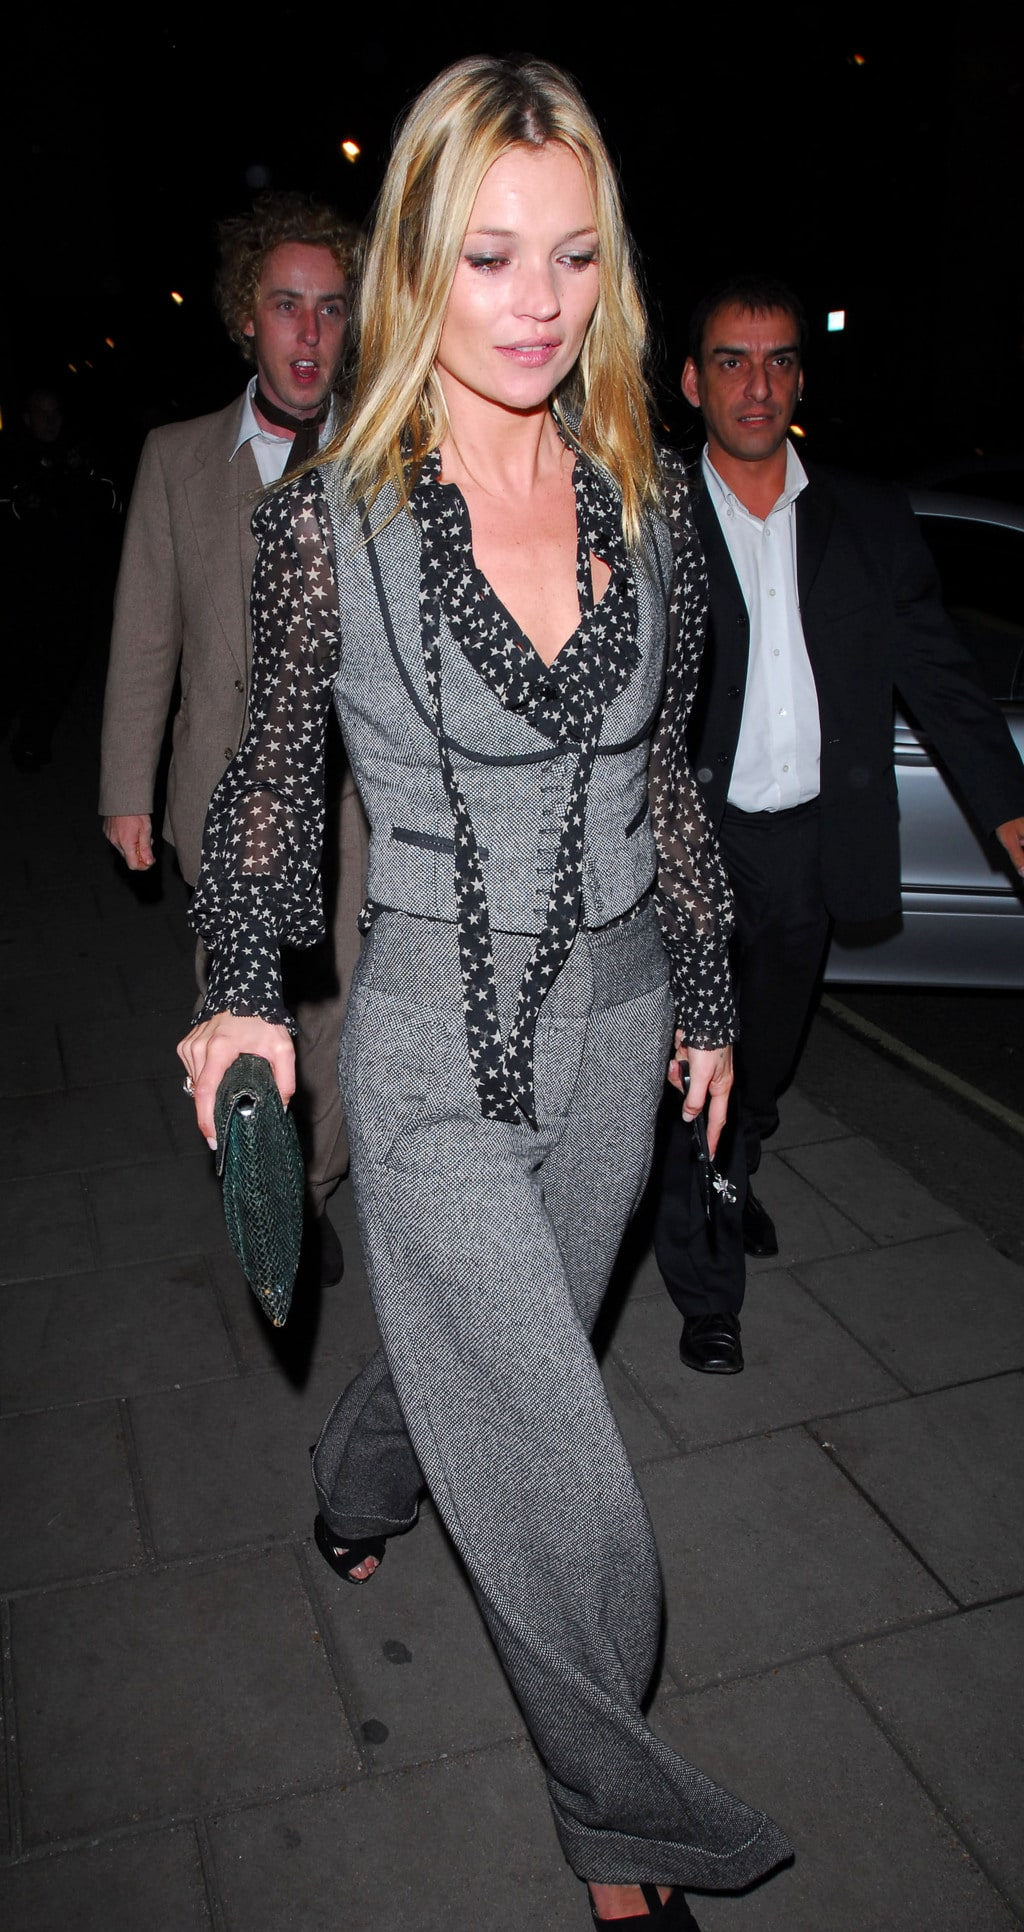 kate moss in a tailored menswear set and heels holding a clutch